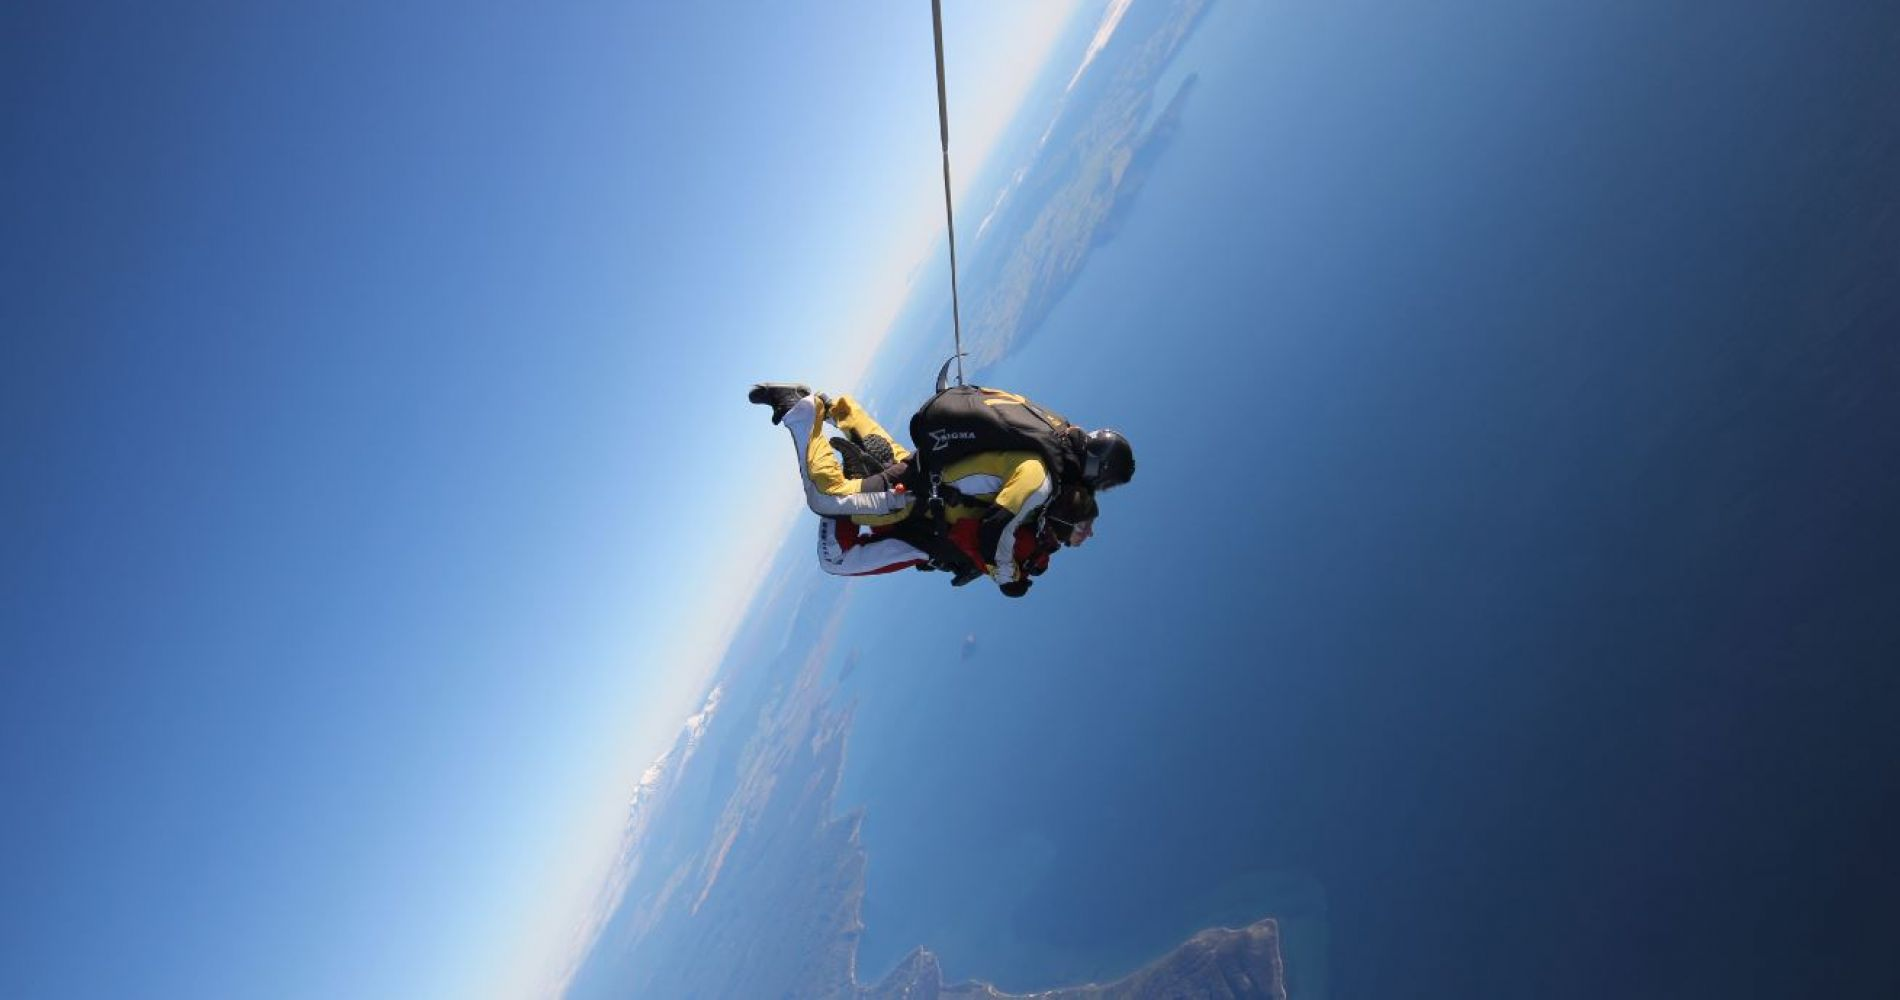 Extreme Hukafalls Jet and Taupo Tandem Skydiving combo